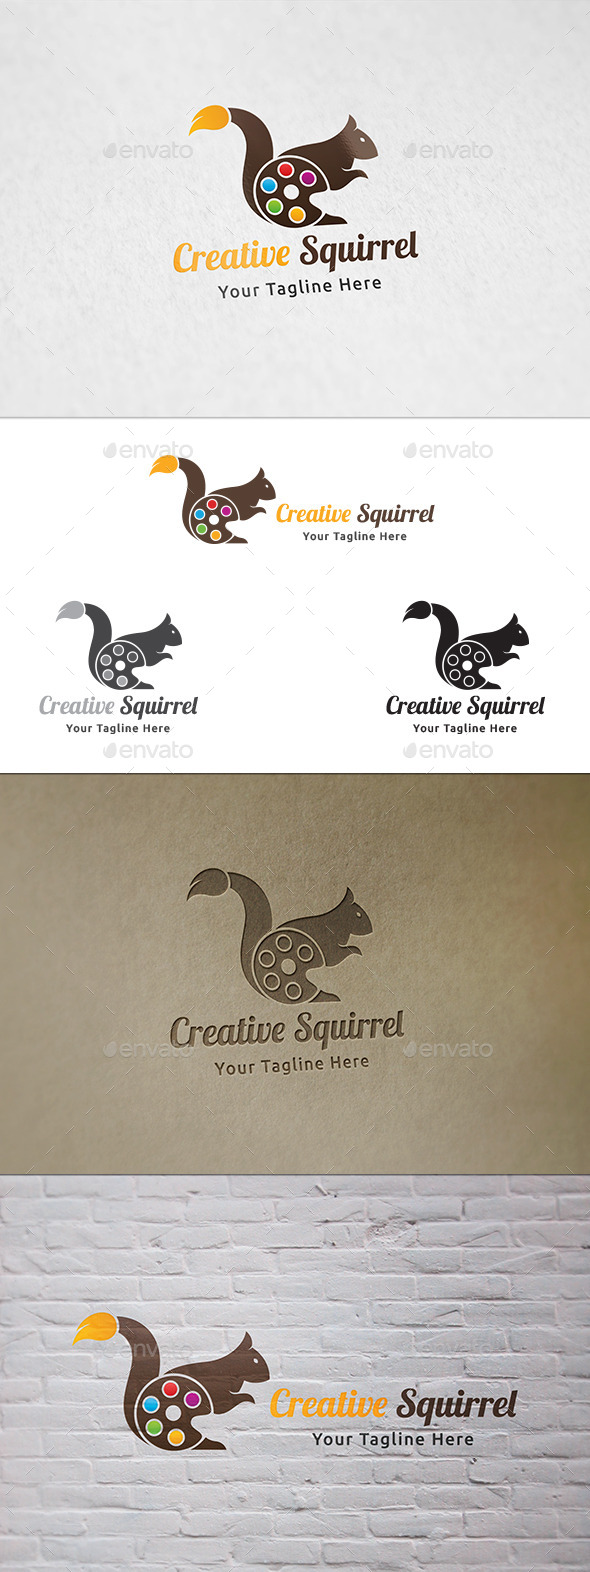 Creative Squirrel - Logo Template - Animals Logo Templates